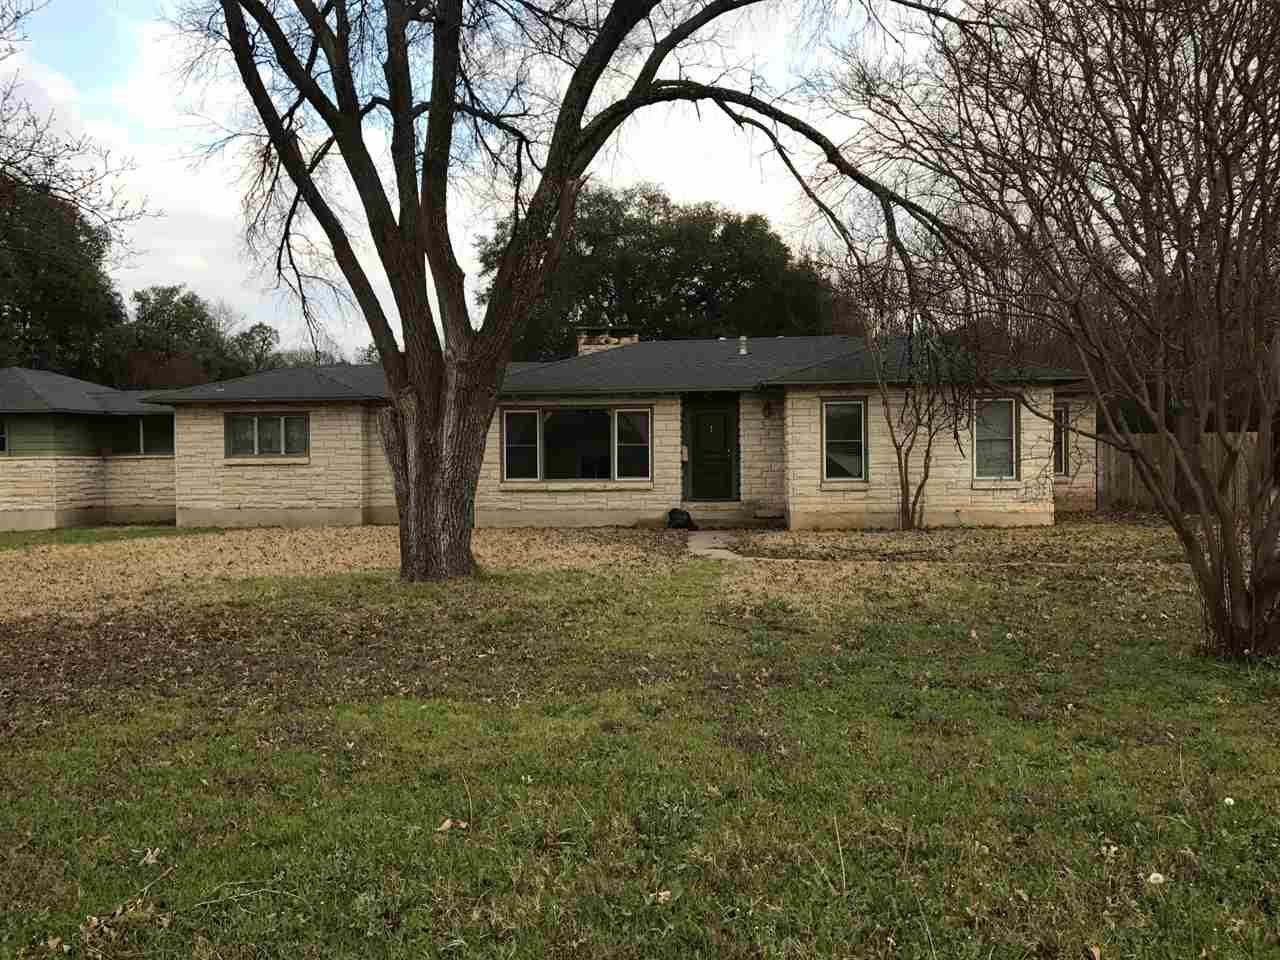 3227 macarthur dr waco tx 76708 mls 168675 for Home builders in waco texas area